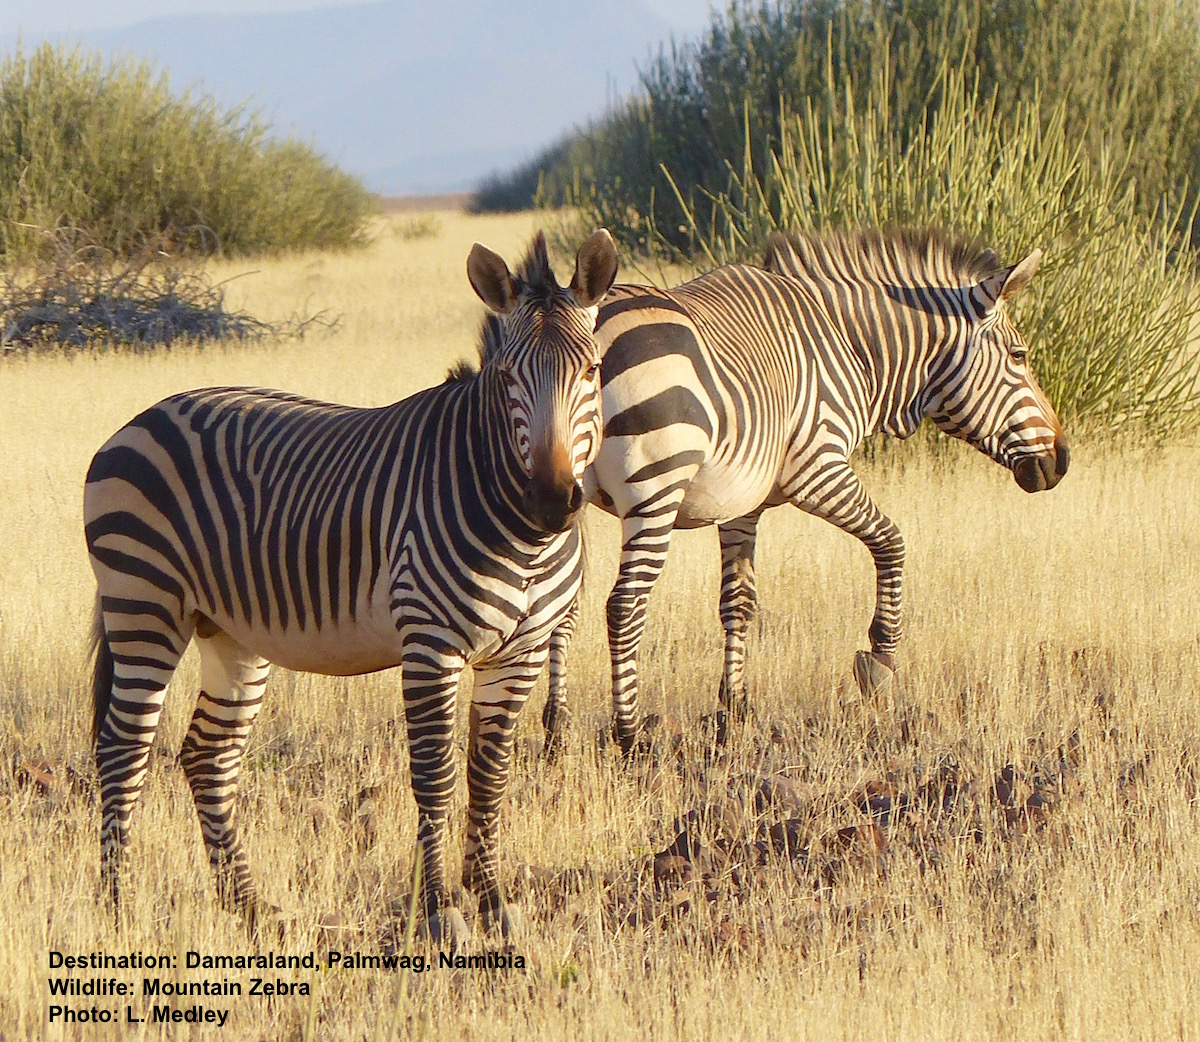 Mountain Zebra Identification: 1. White bellies are your first tip. 2. Look for single thin black stripe down middle. 3. Dewlap under the throat (only zebra species with this characteristic) 4. Very wide stripes across flank (Cape mountain zebra has widest rump stripes) 5. No shadow stripes between black. 6. Muzzle has a chestnut colored patch on top of black nose. 7. Leg stripes are pronounced all the way down to hooves (on plains zebras they fade out at the bottom) Destination: Palmwag Concession, Damaraland, Namibia Photo: ©L. Medley